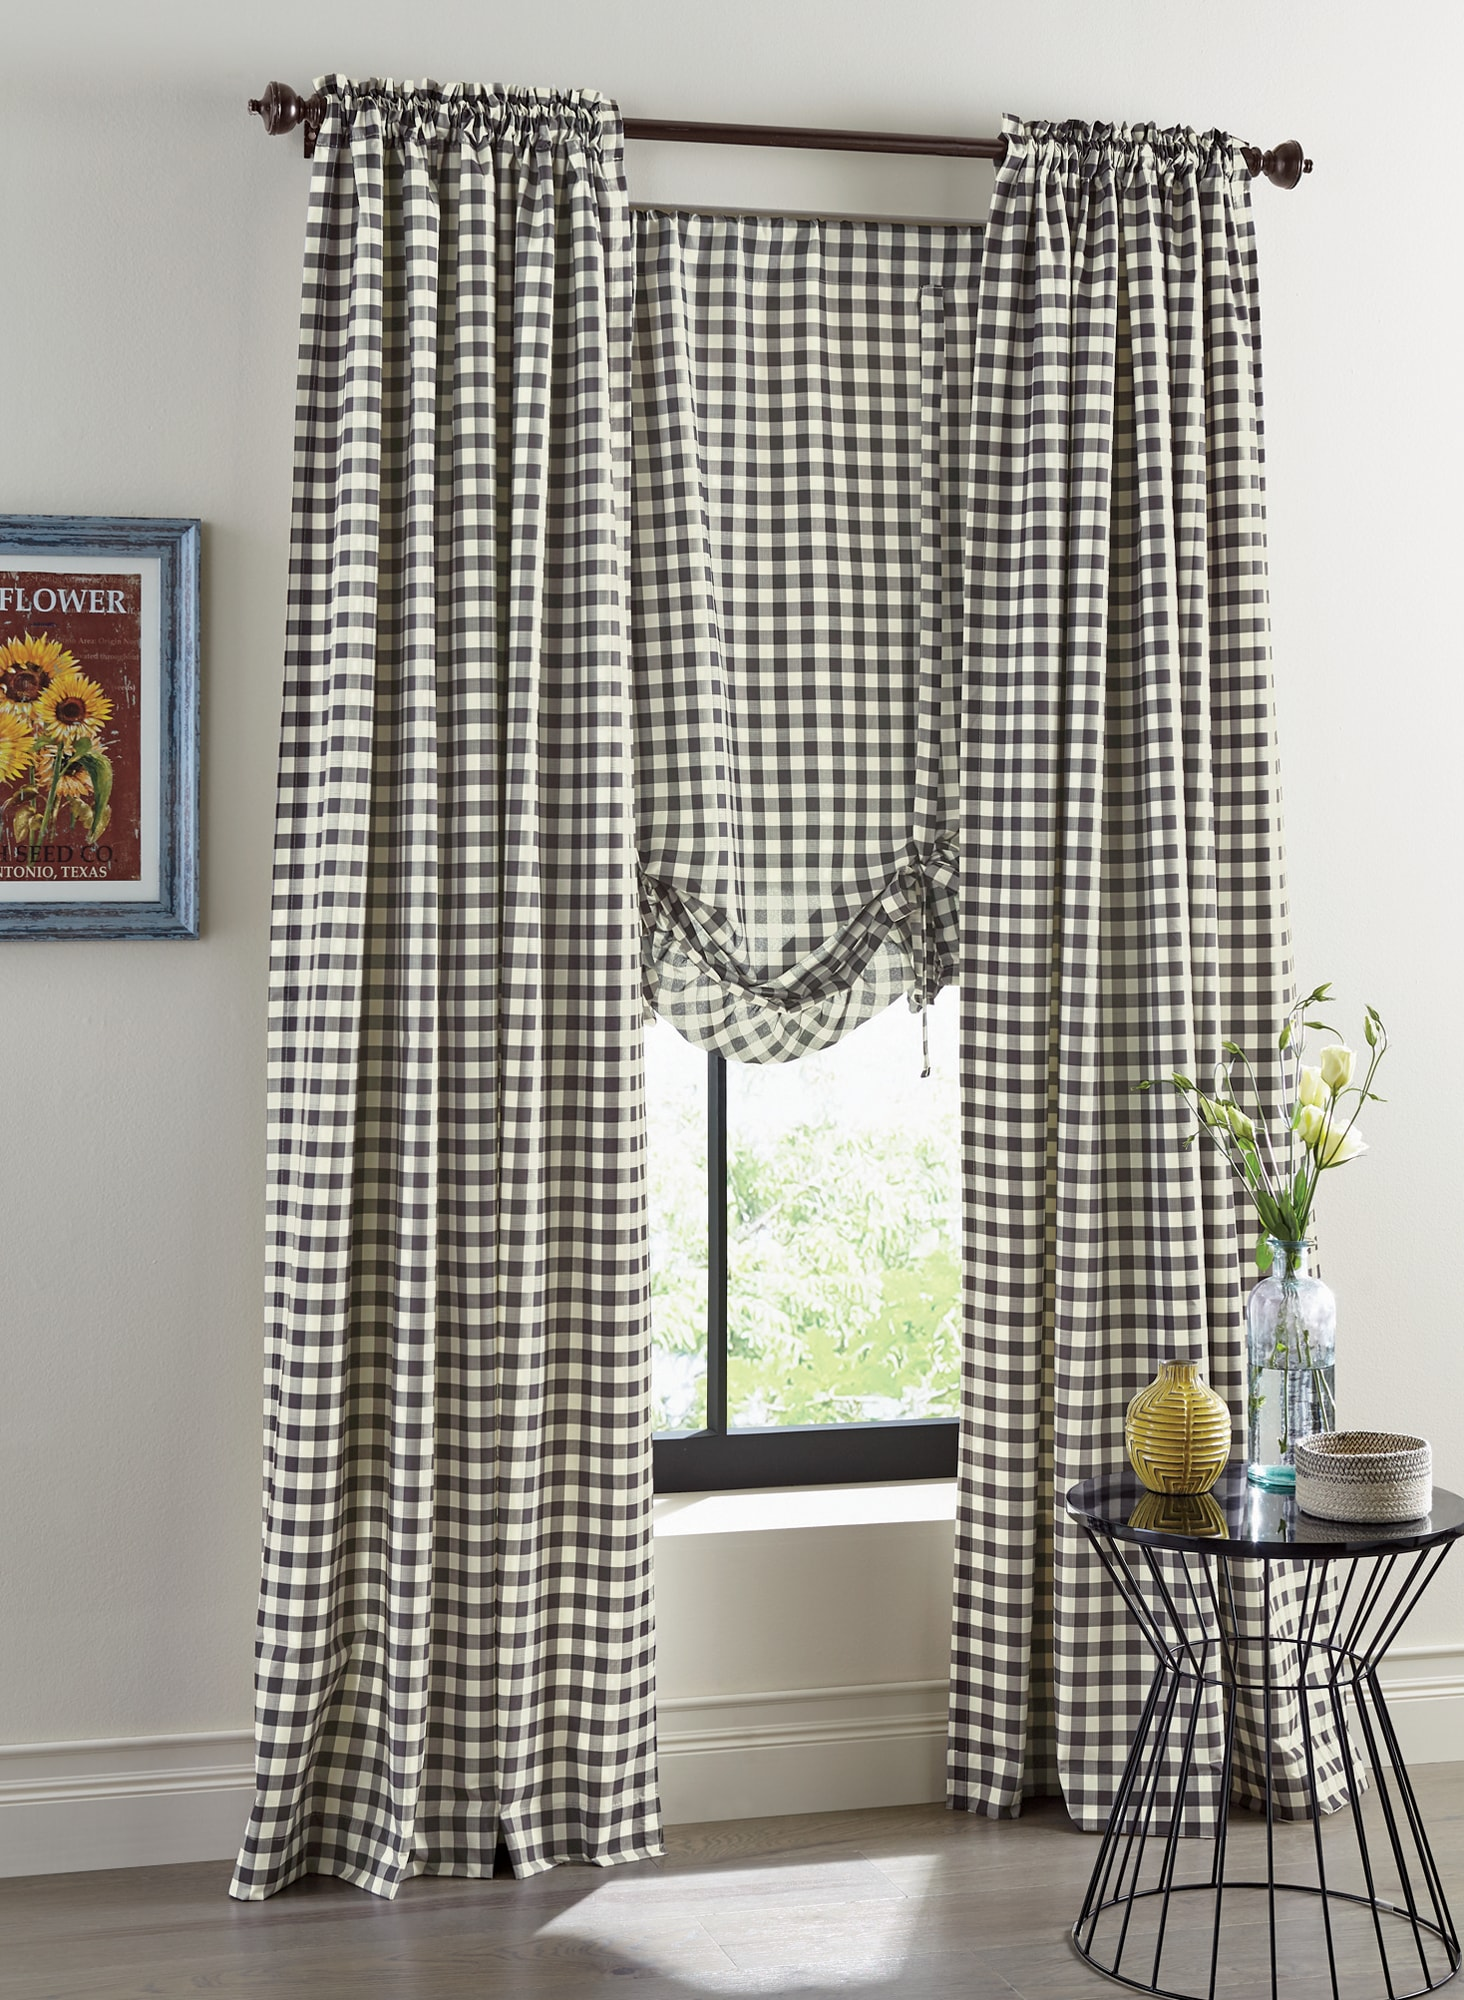 country curtains for living room light paint colors drapes sets bedroom kitchen door gingham check panel